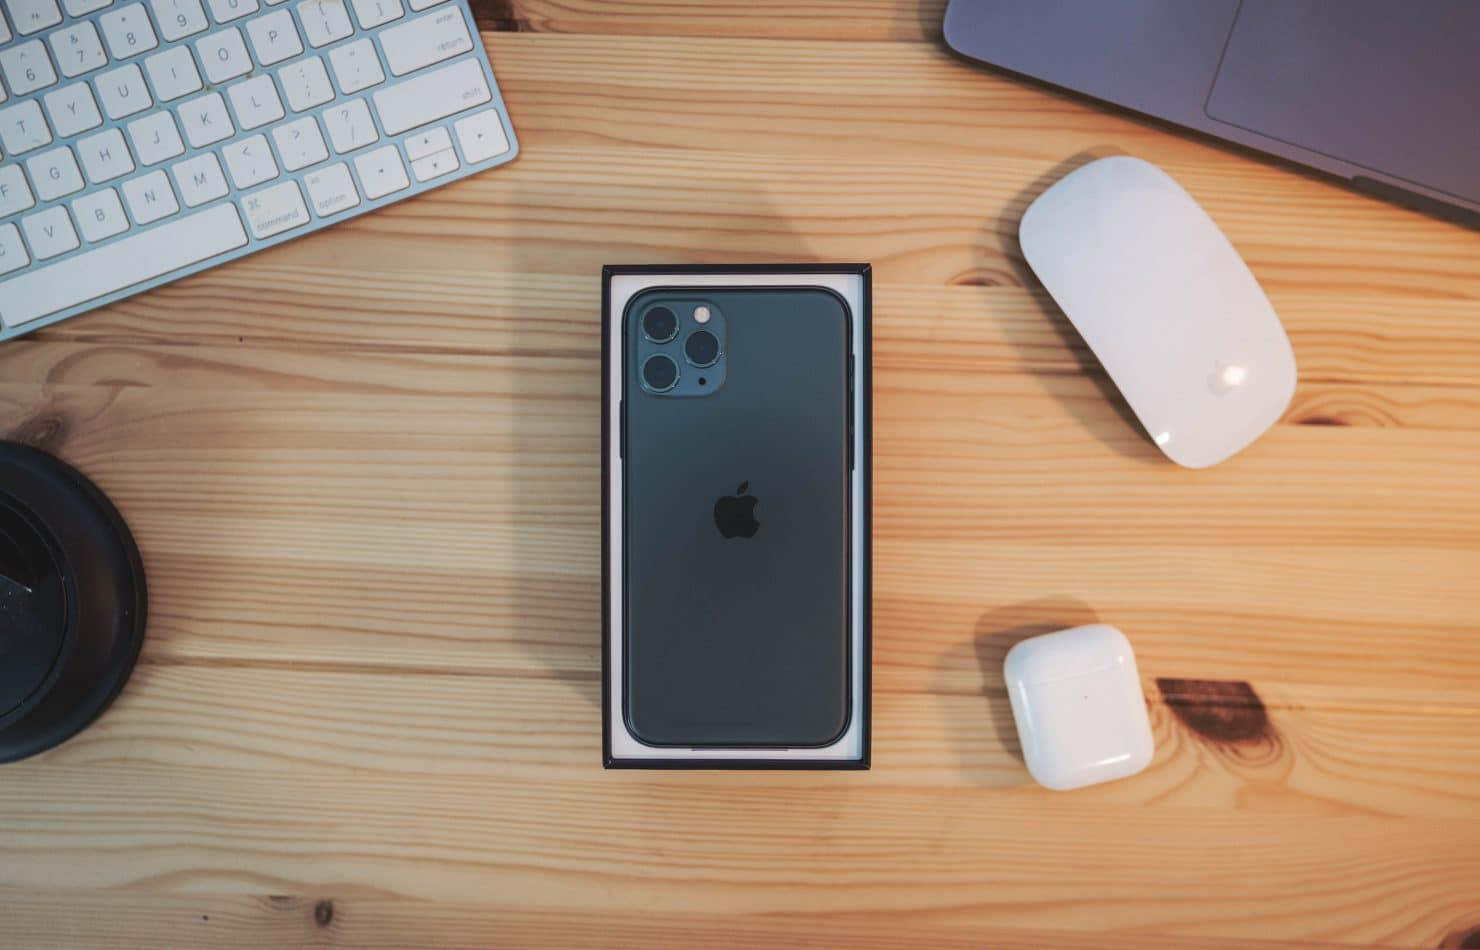 iPhone 11 Pro with iOS 13 features